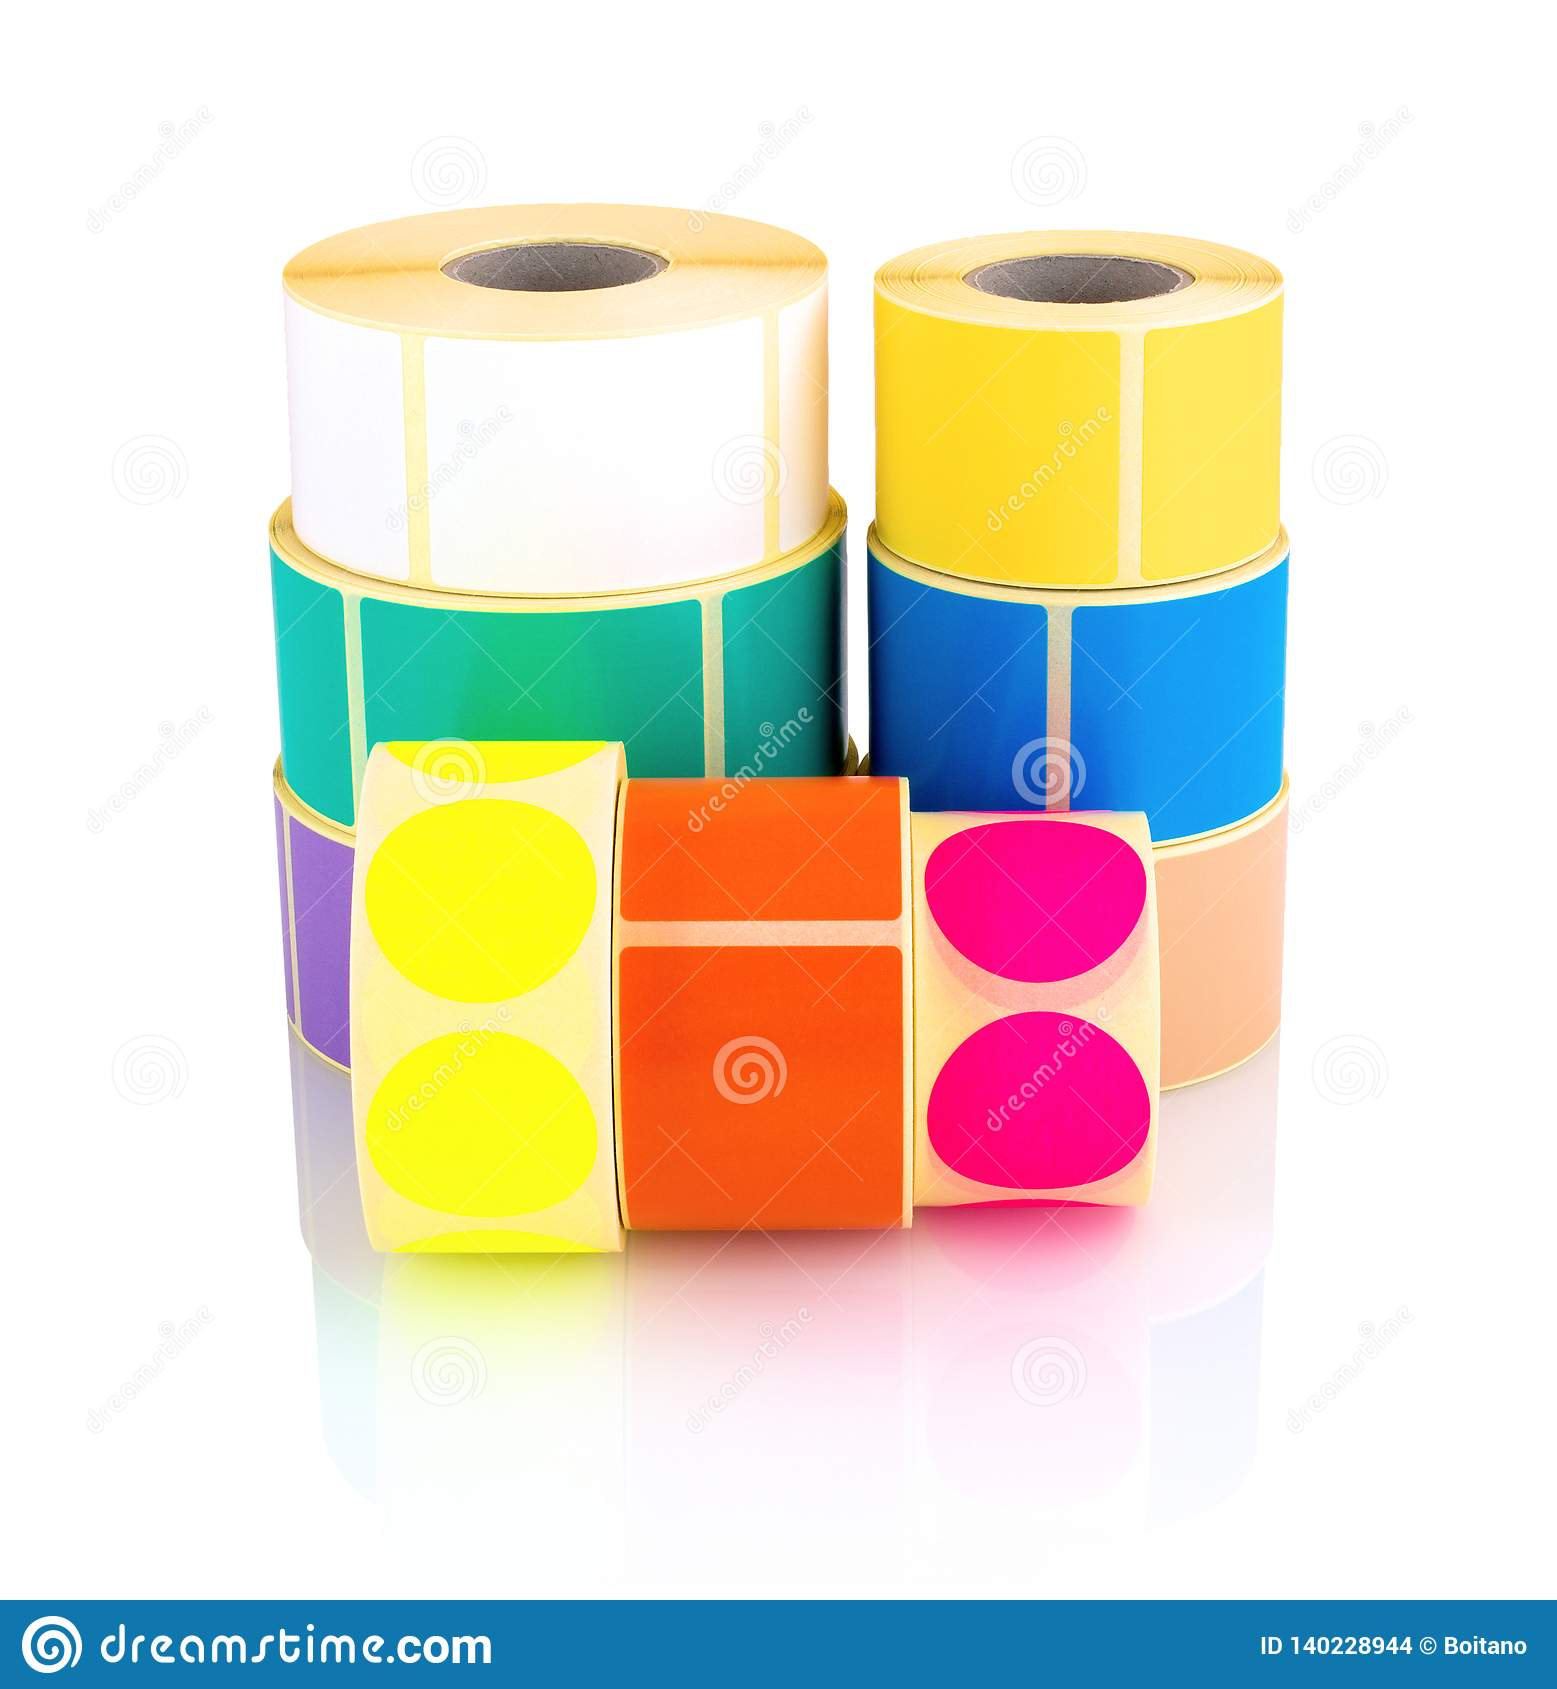 Colored label rolls isolated on white background with shadow reflection. Color reels of labels for printers.